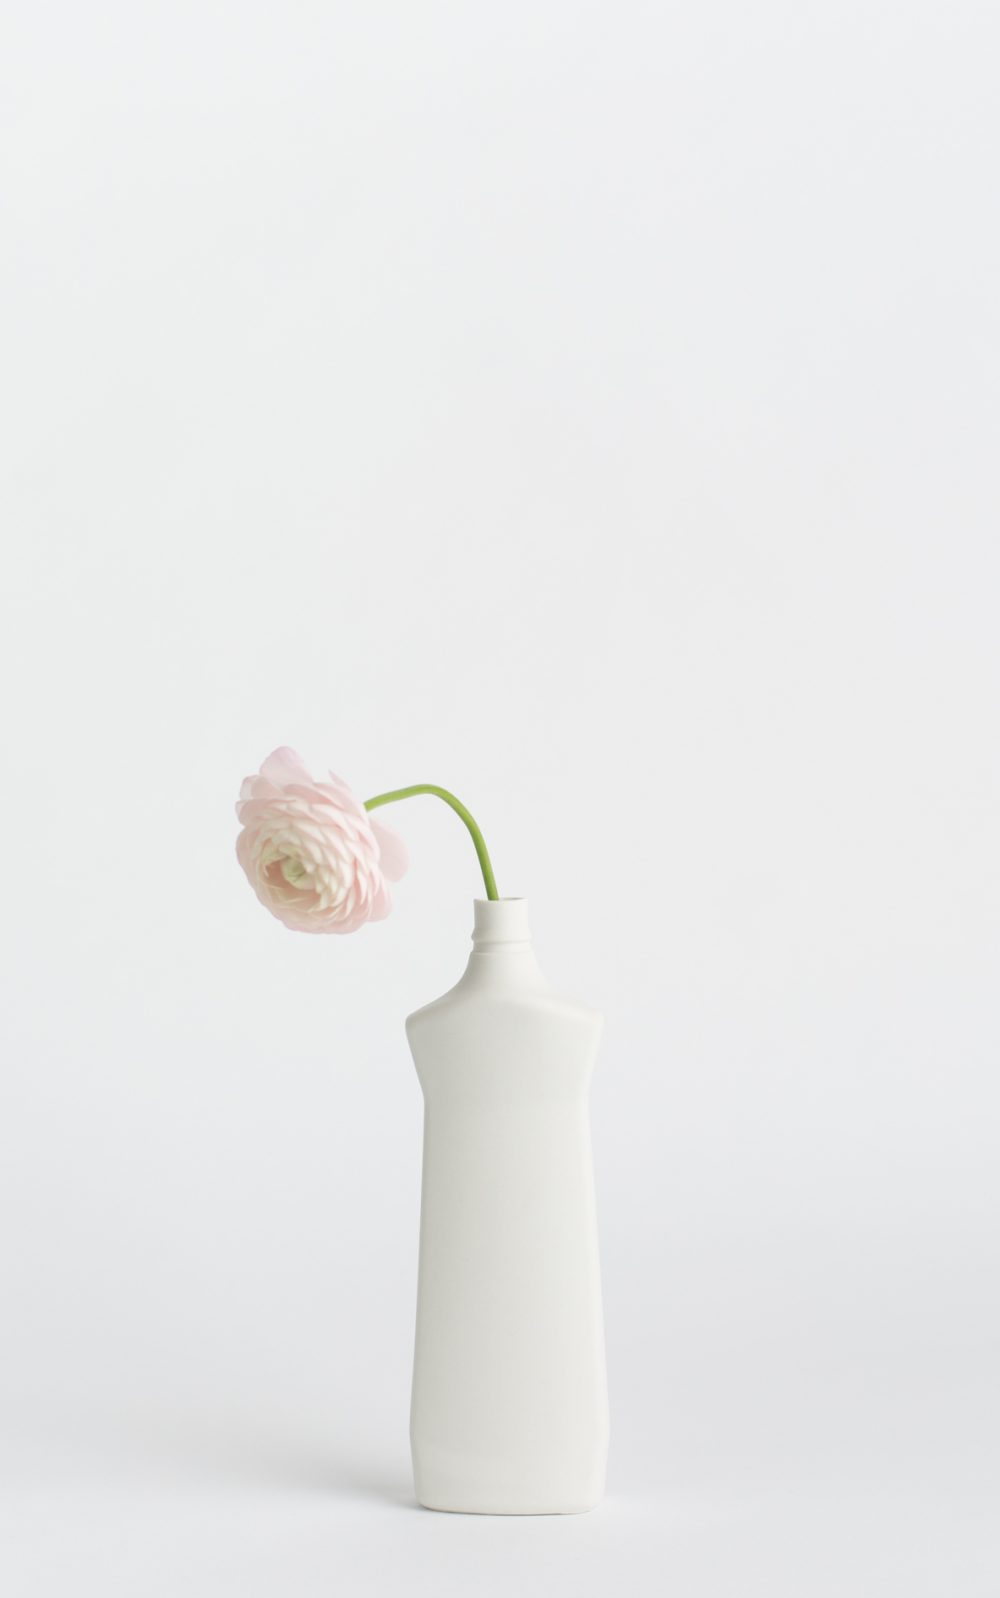 bottle vase #1 white with pink flower